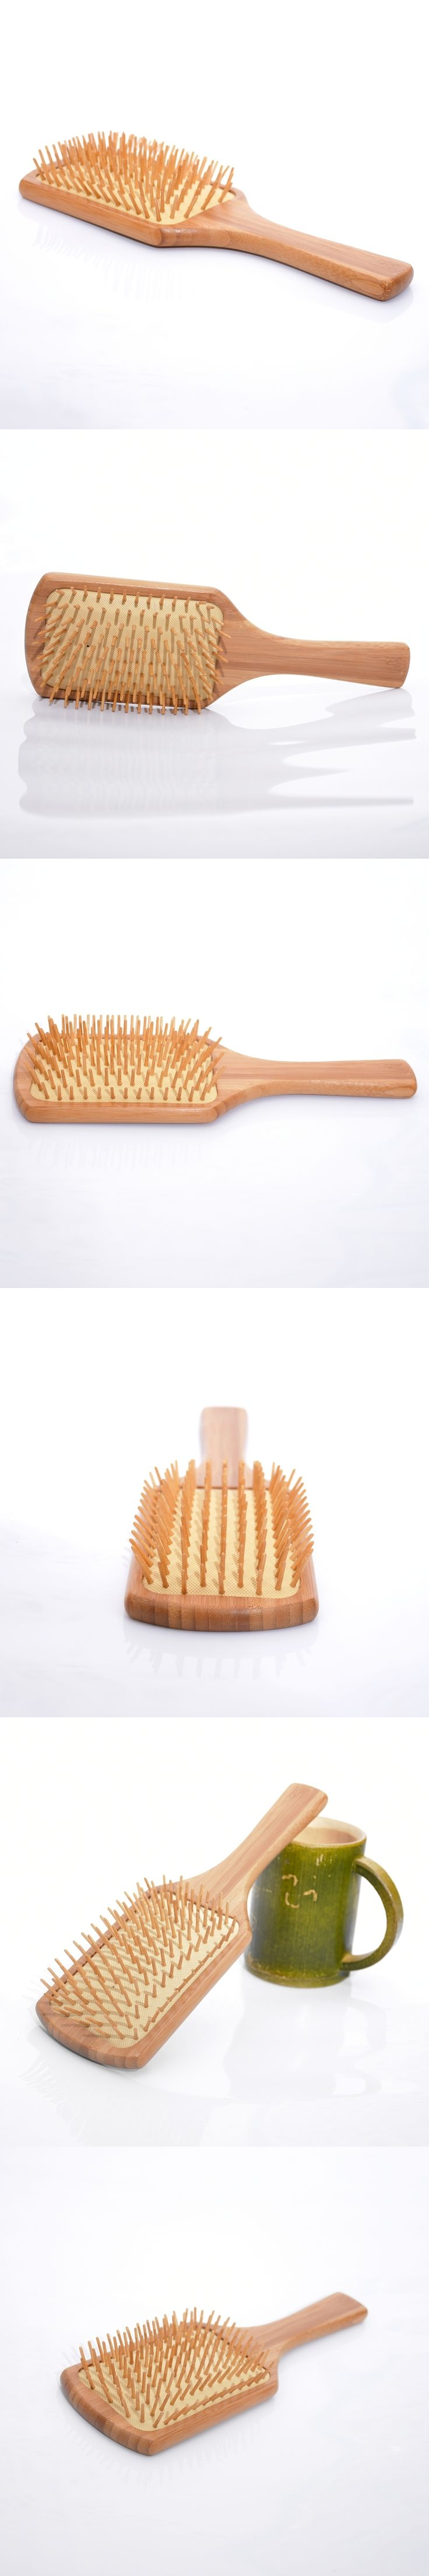 Fashion Wooden hair brush Air bag massage Bamboo hair comb anti-static brush comb S22D5